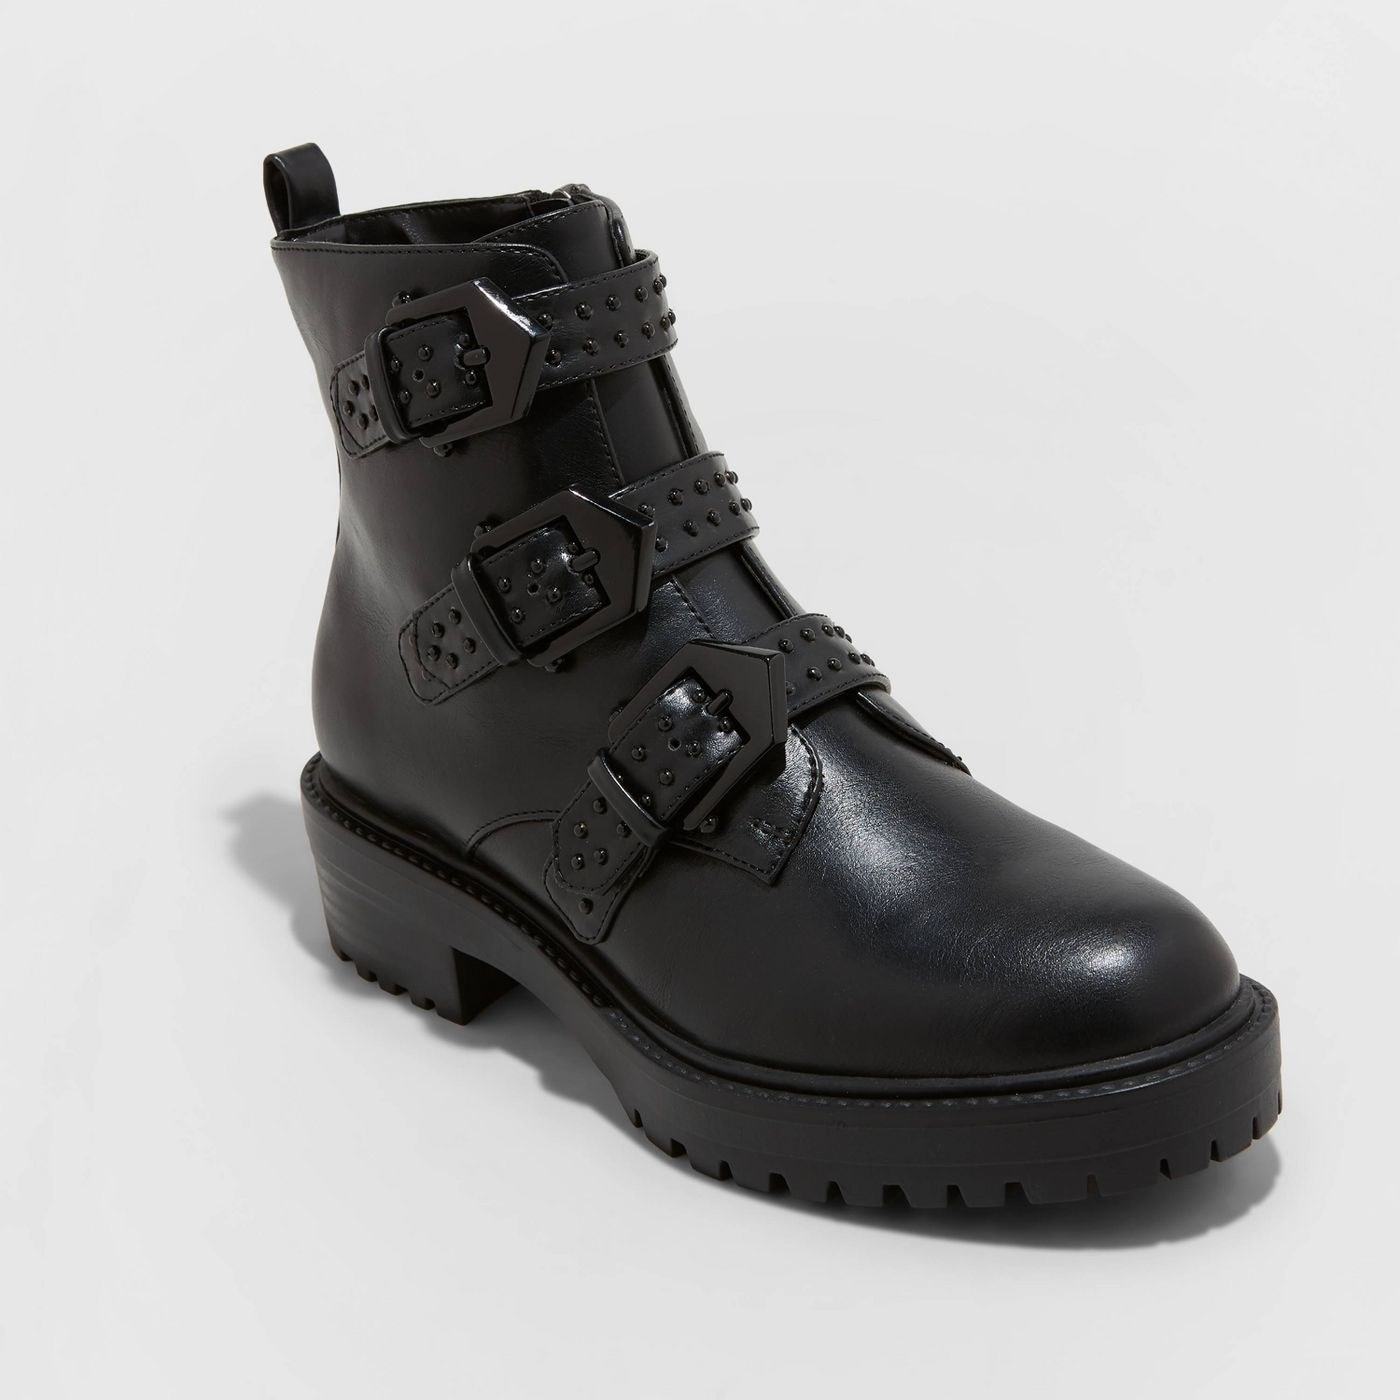 black leather boots with buckle straps